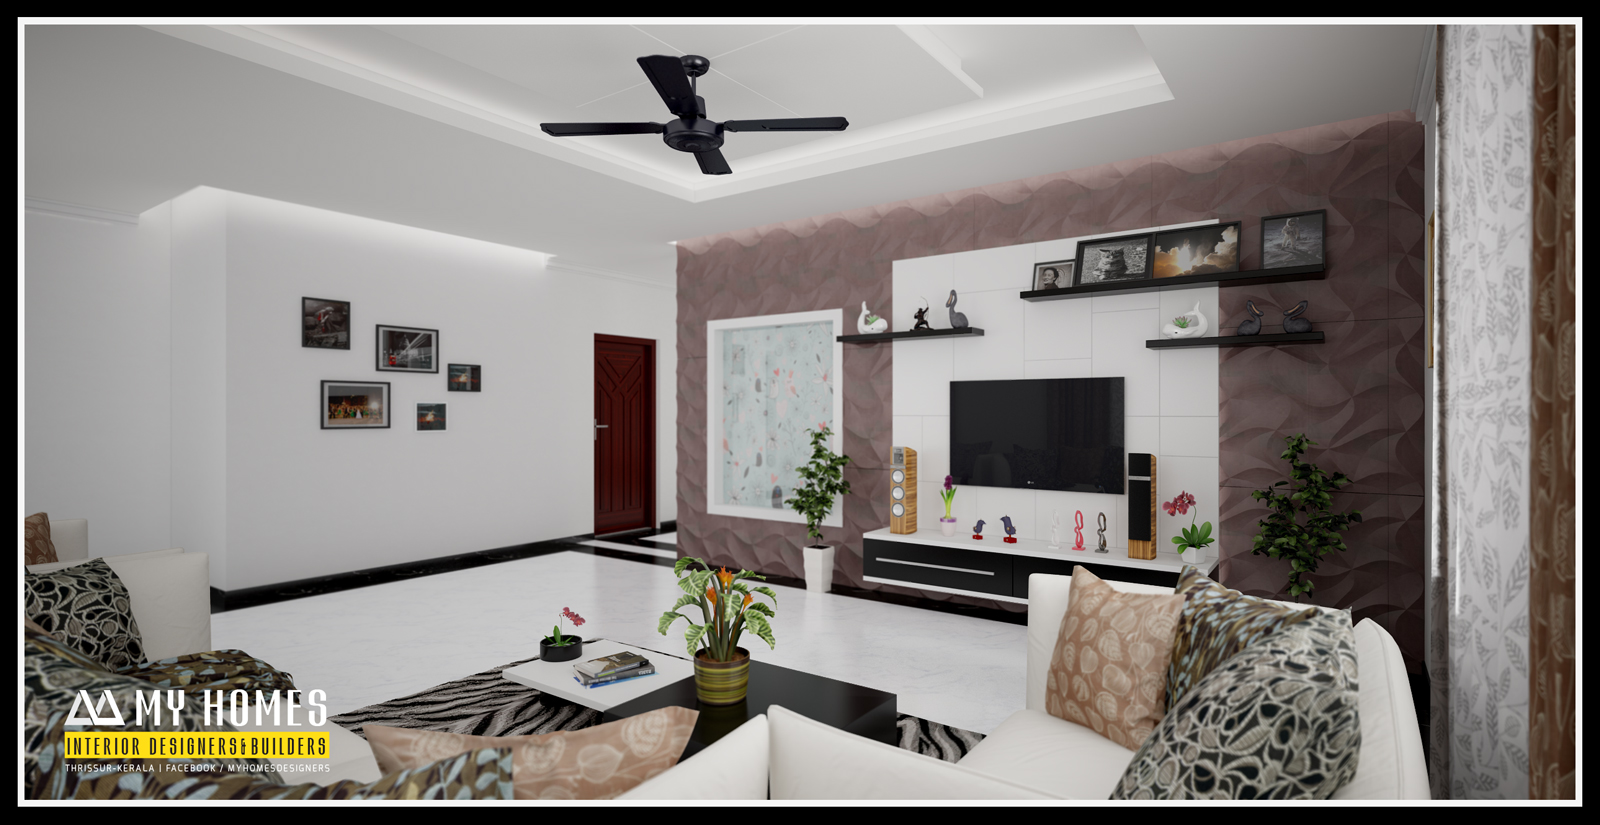 Kerala interior design ideas from designing company thrissur for Interior designs of room